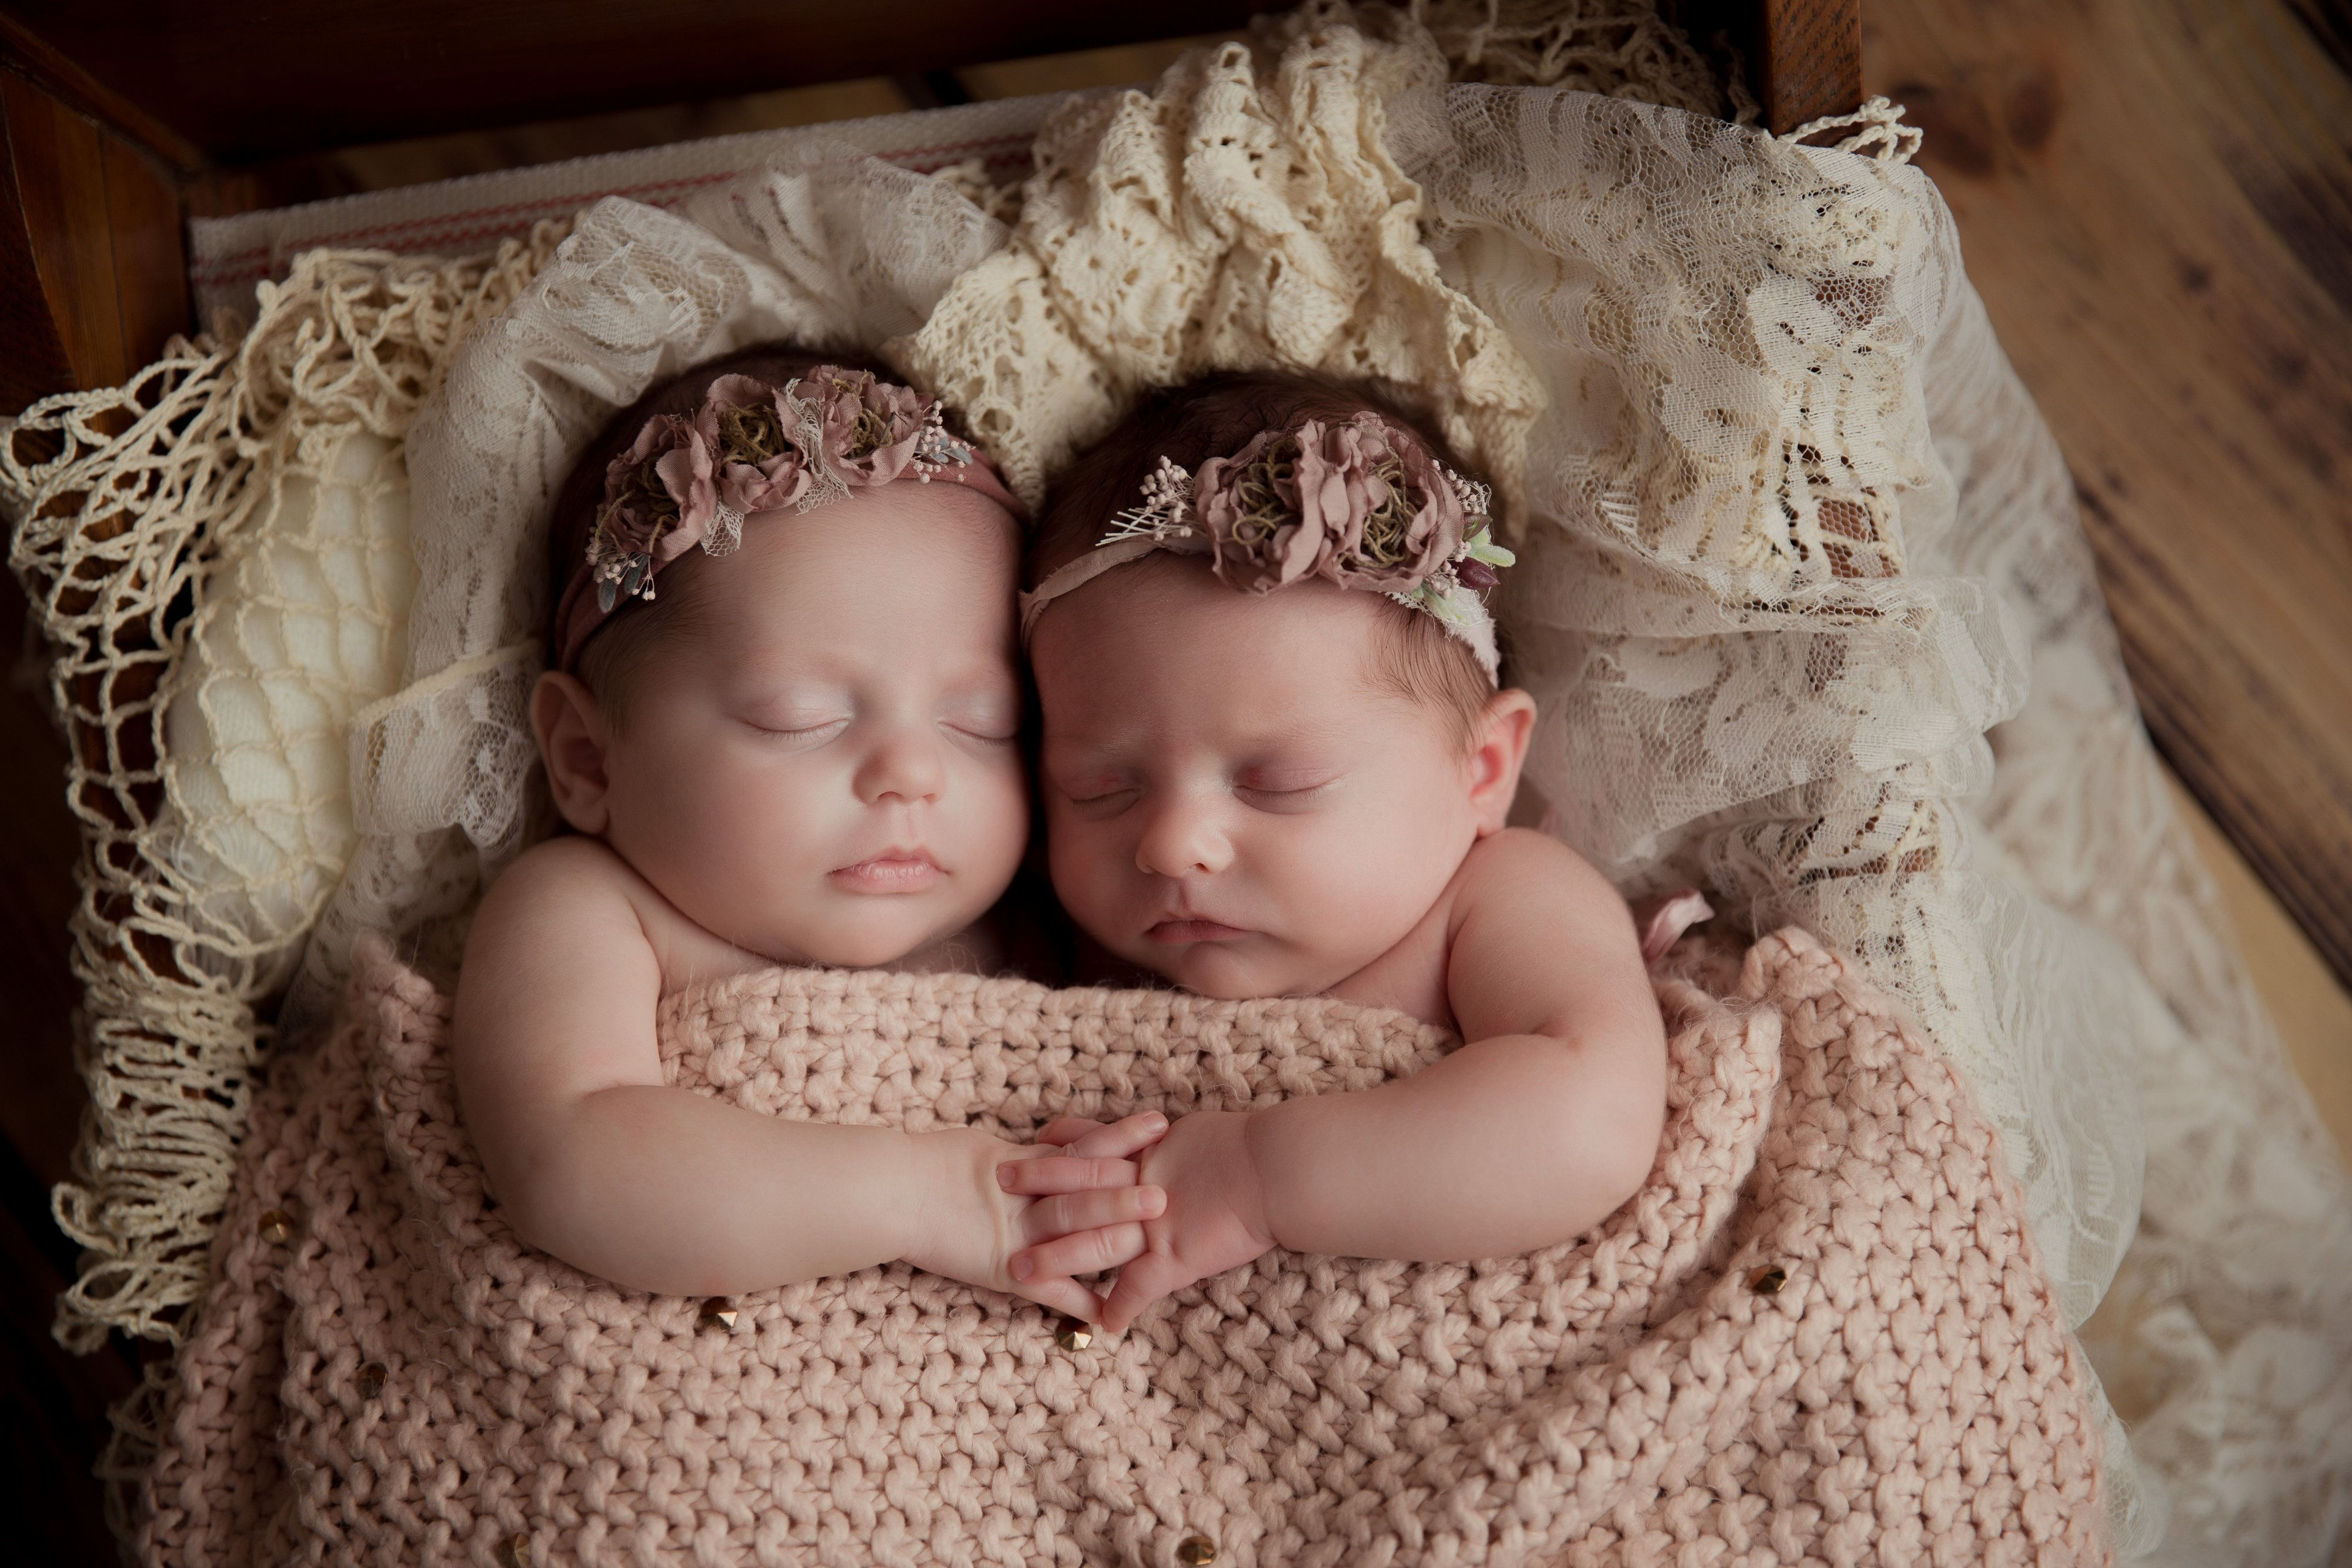 Newborn Photos Of Preemie Girl Twins Born At 32 Weeks The